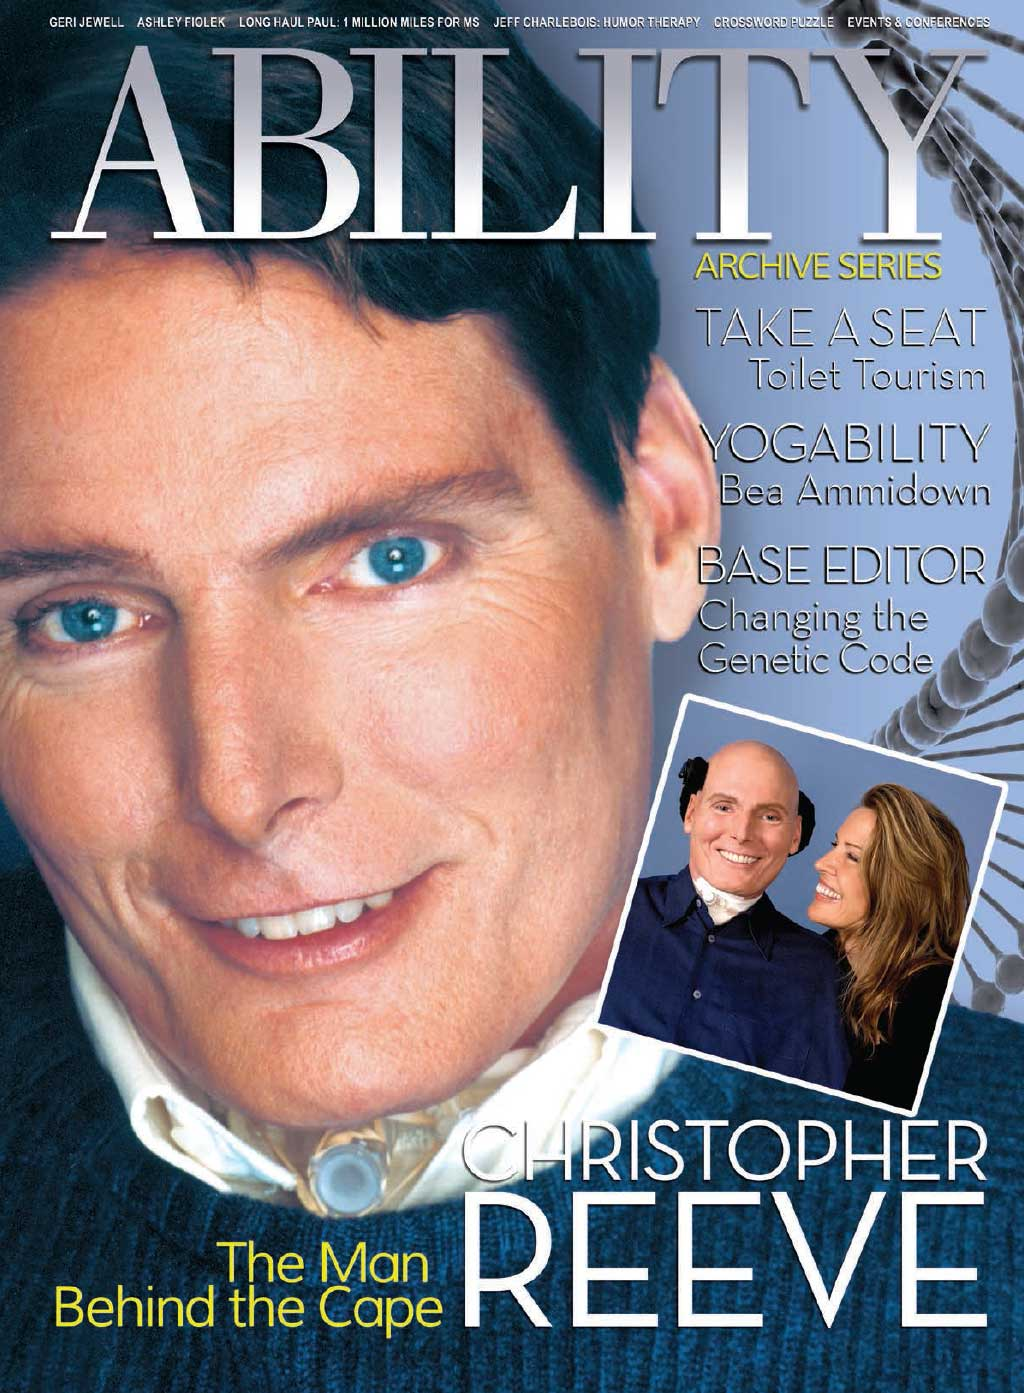 Christopher Reeve Issue — Archive Series